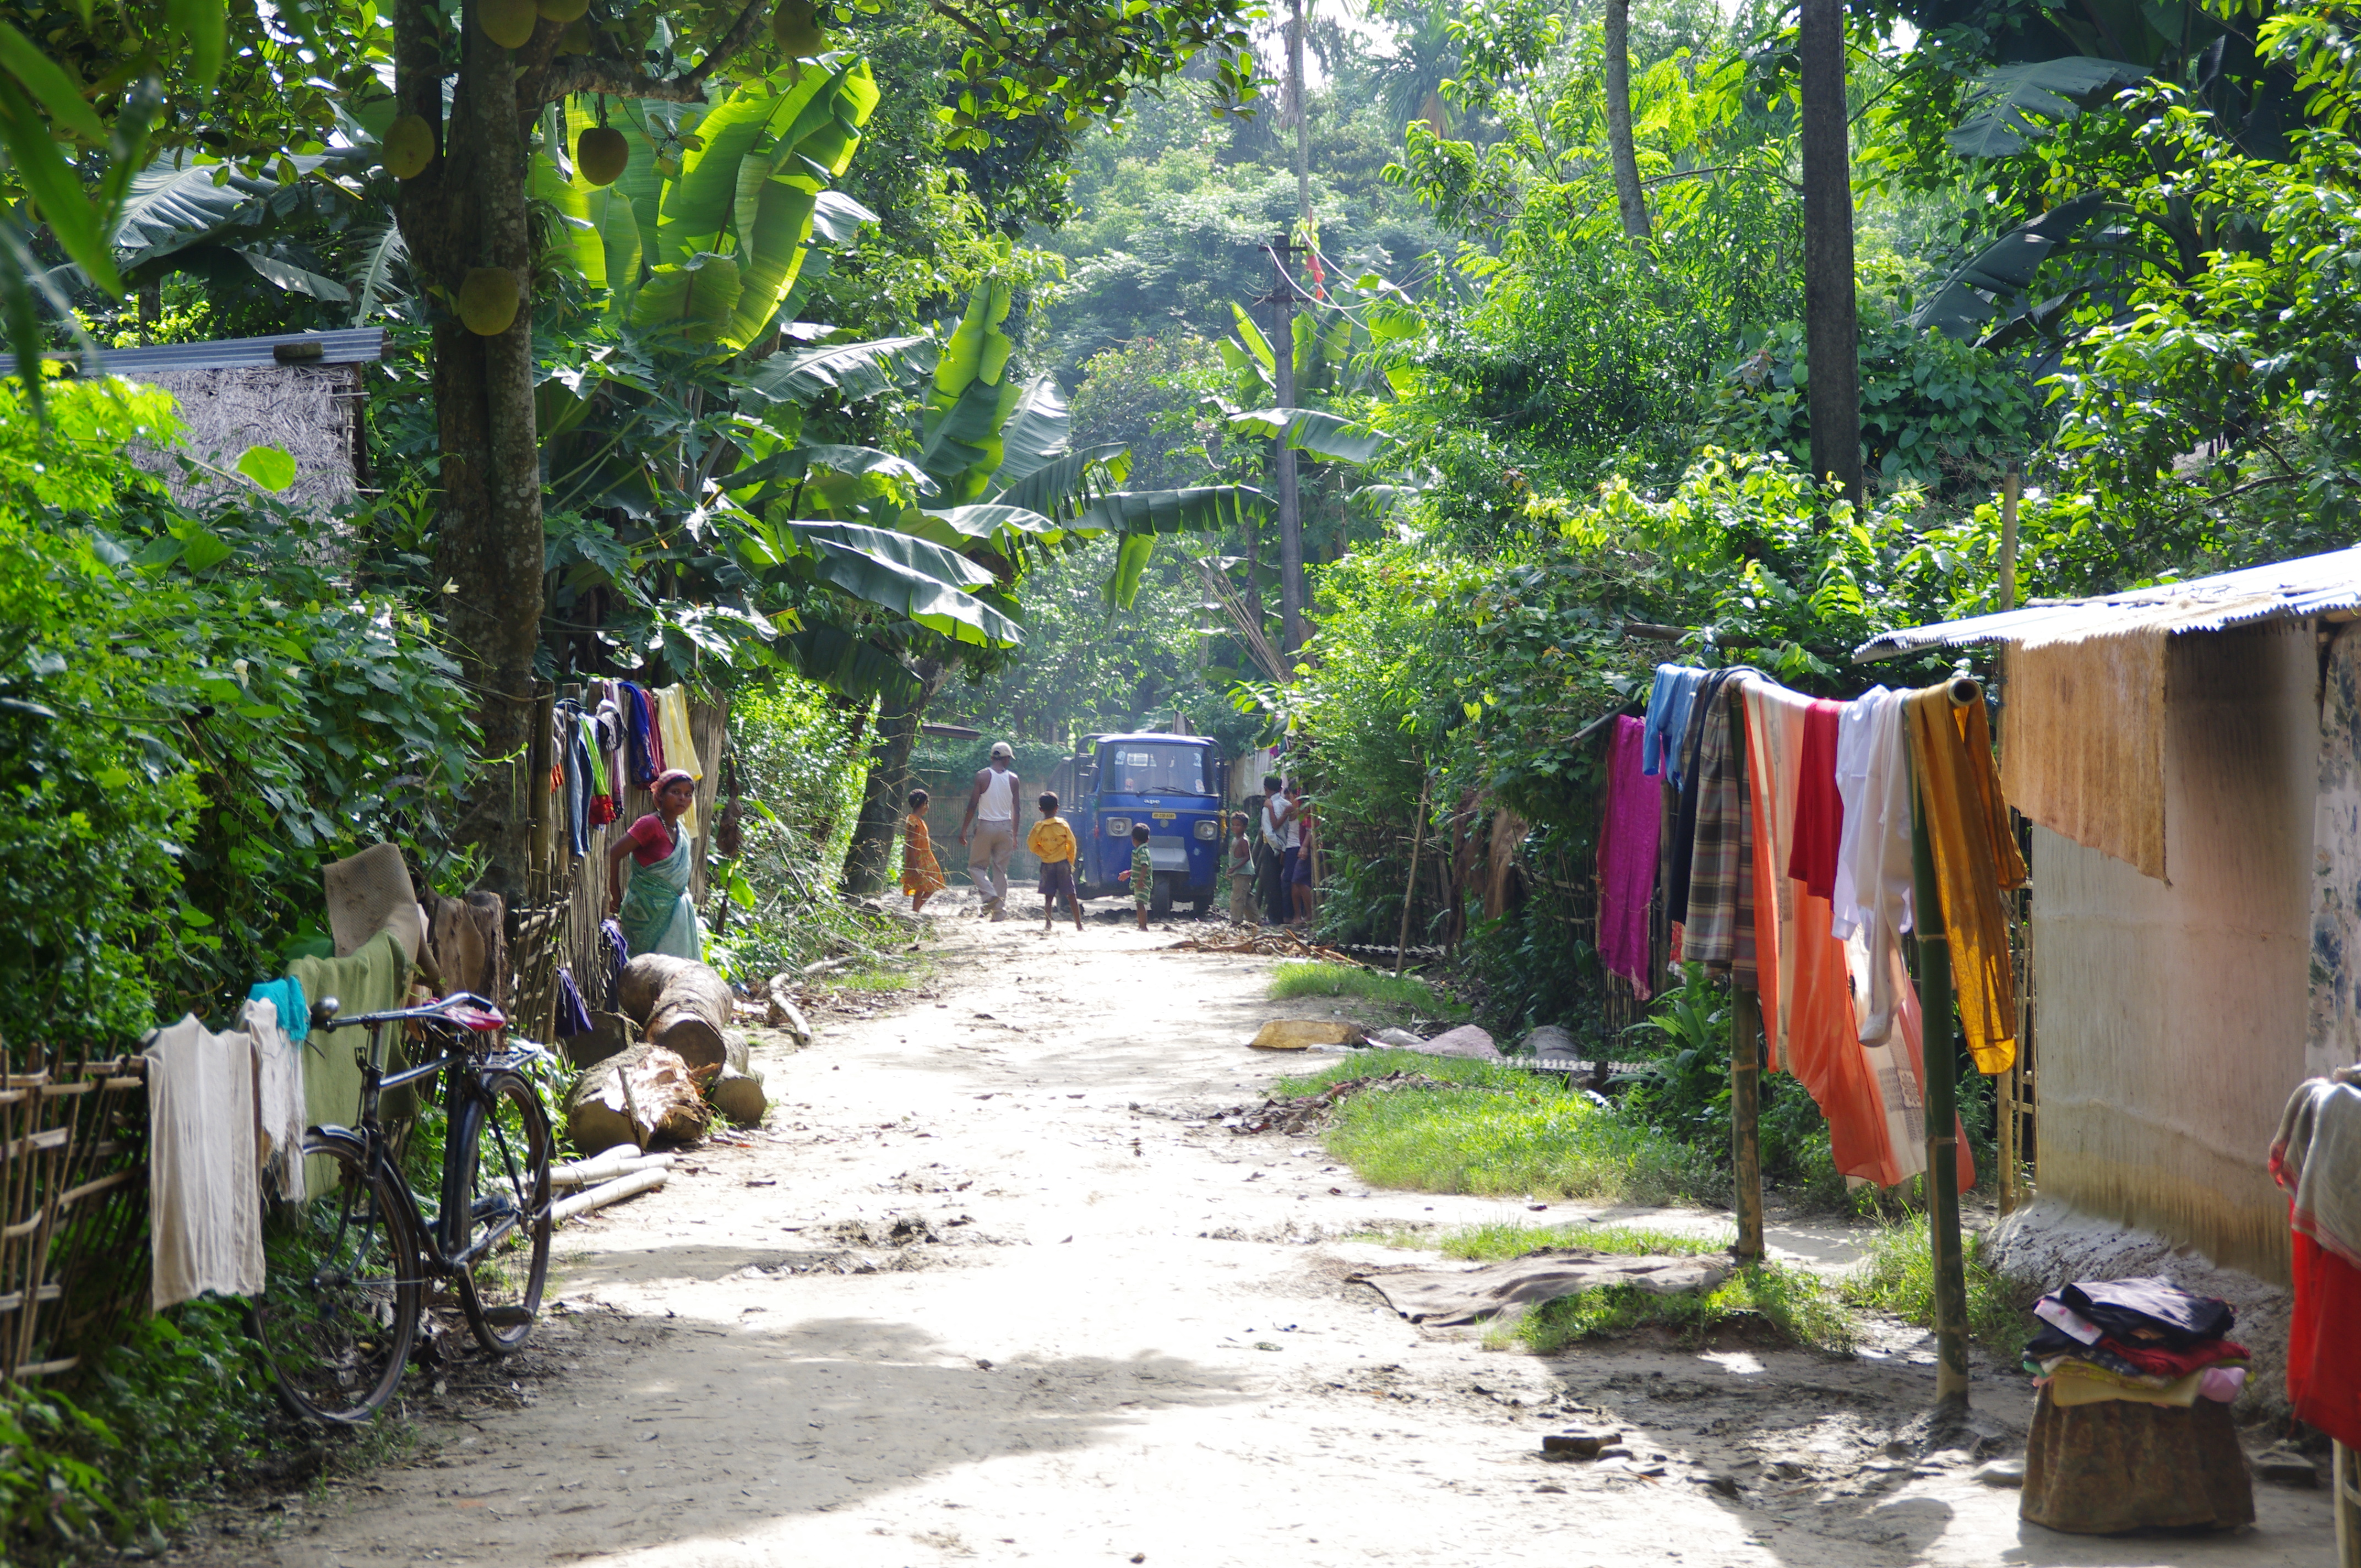 Sanitation in Assam